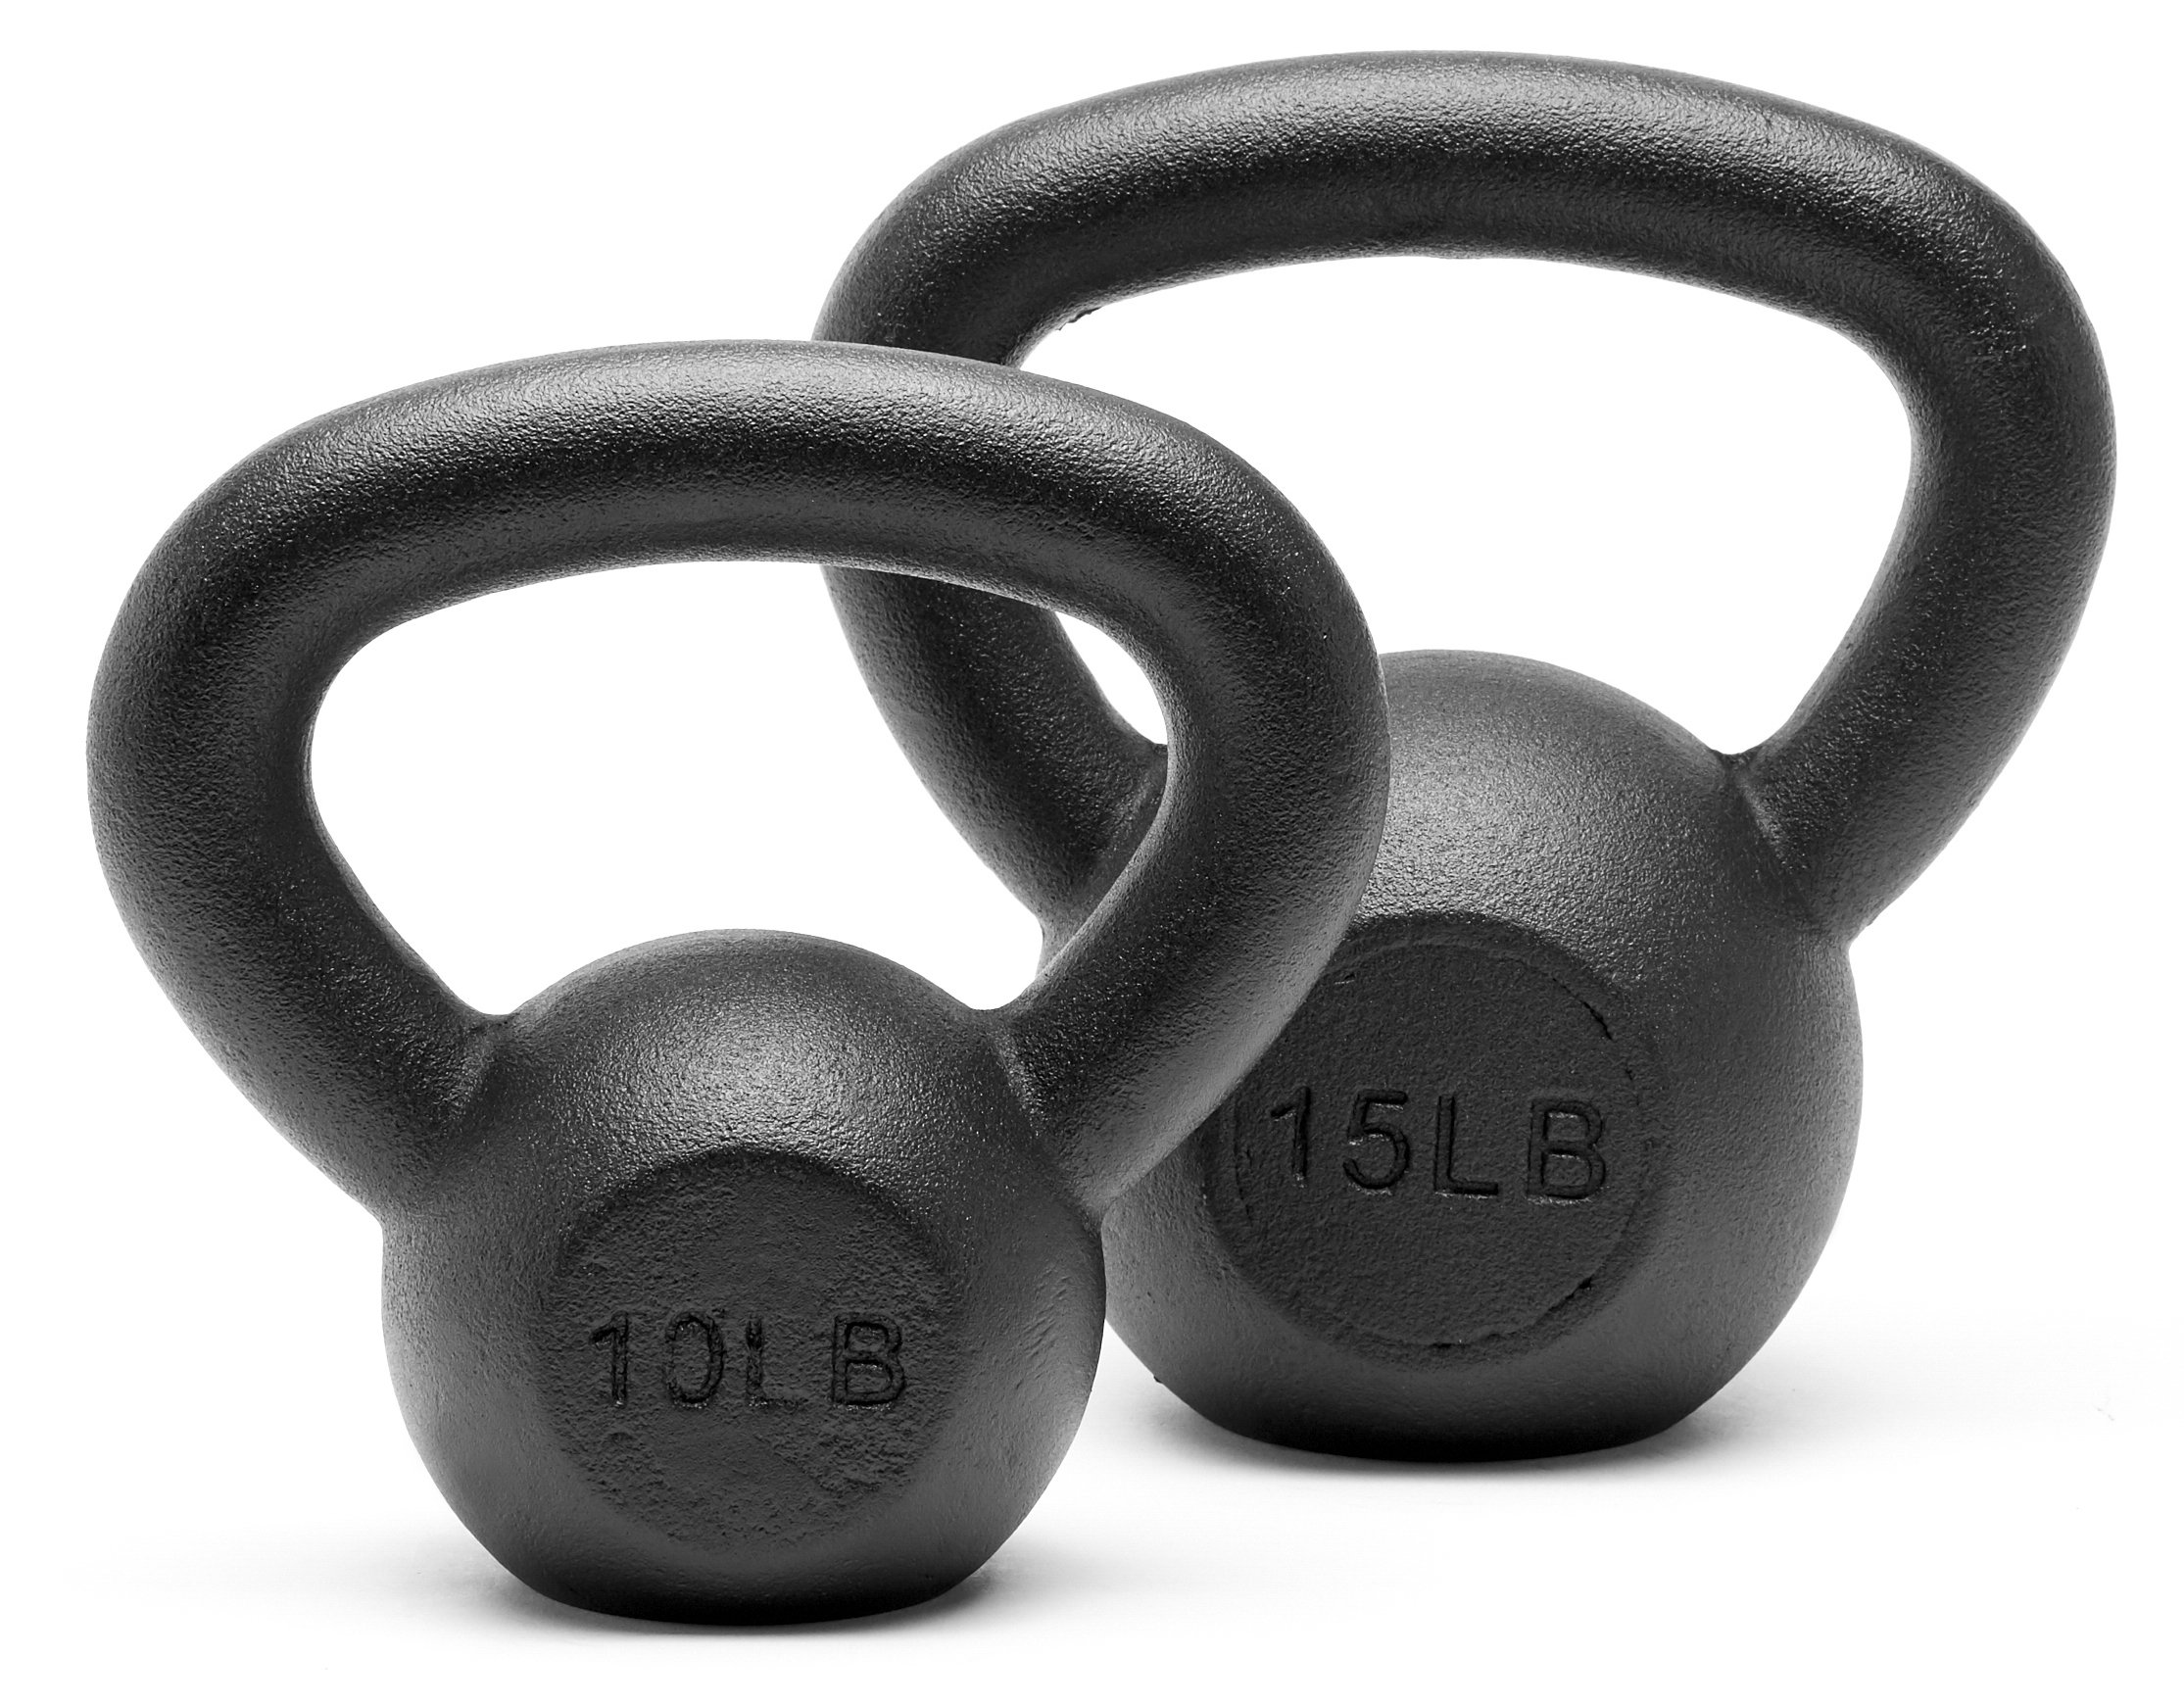 Unipack Powder Coated Solid Cast Iron Kettlebell Weights Set- (10+15 lbs)